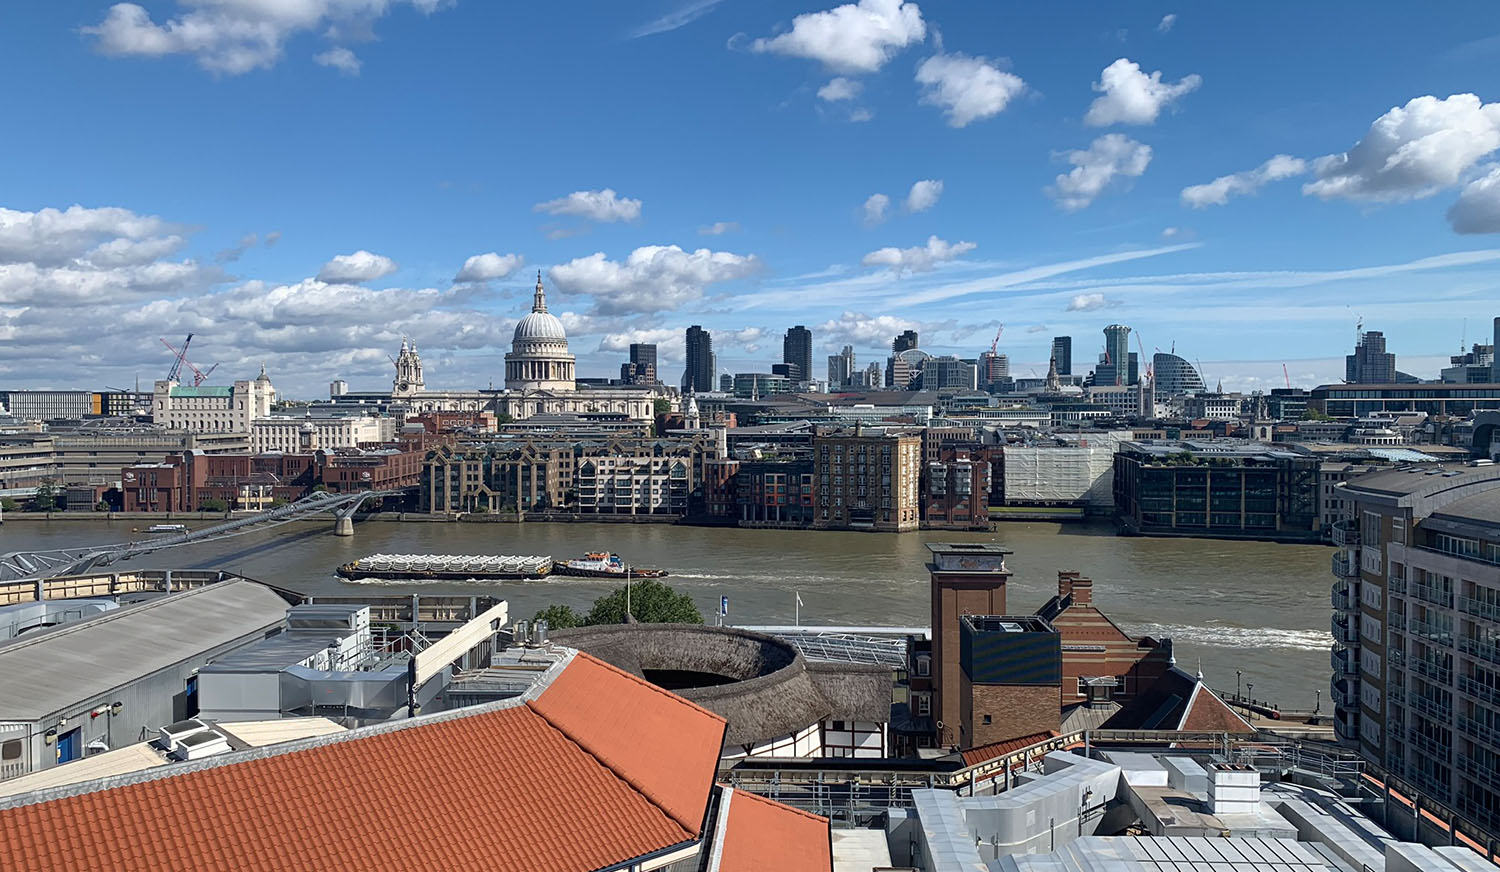 View across the Thames from Triptych